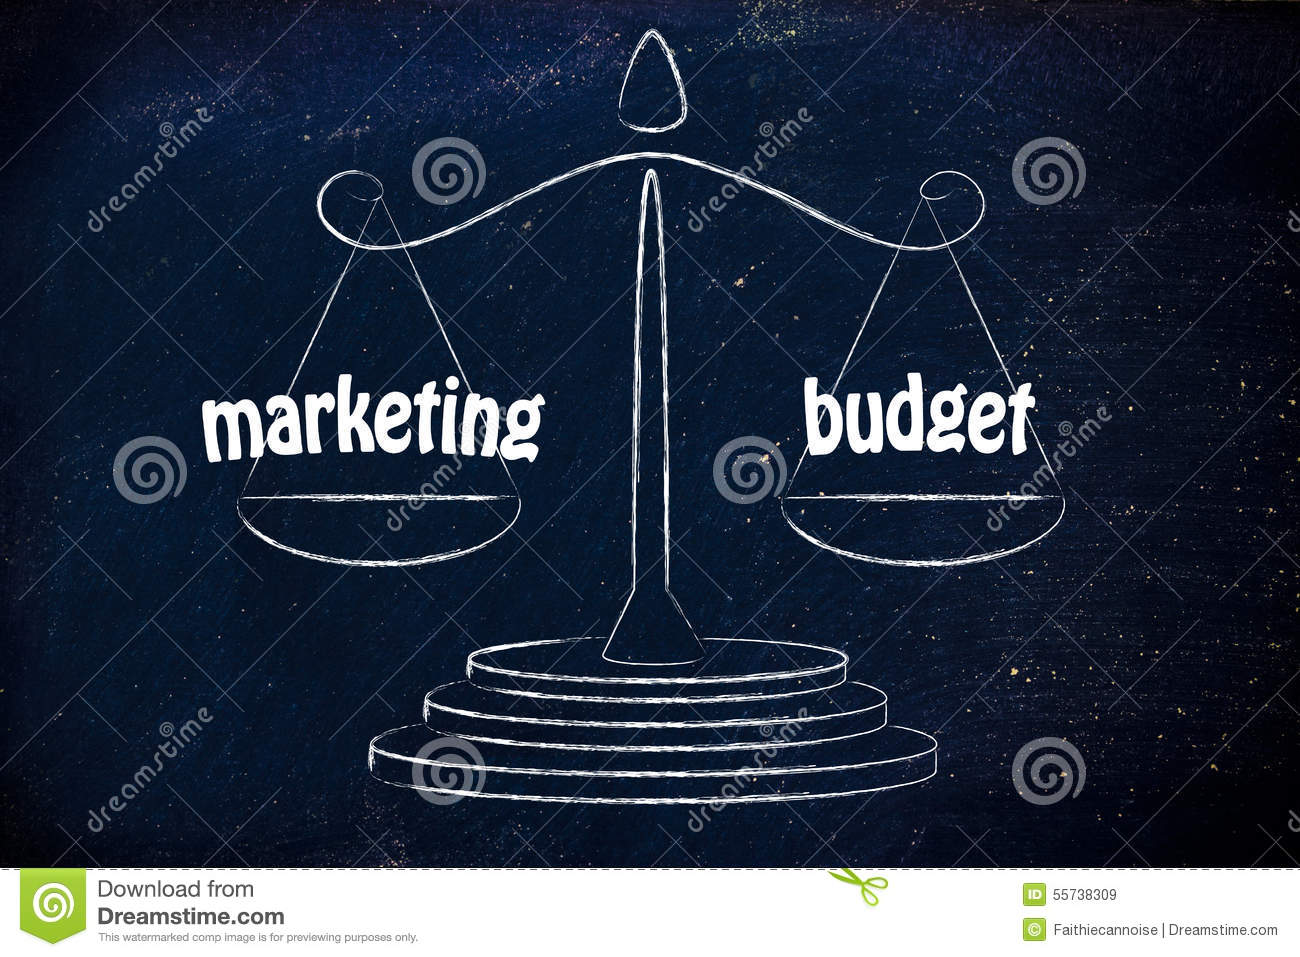 Finding a good balance in business: marketing & budget values